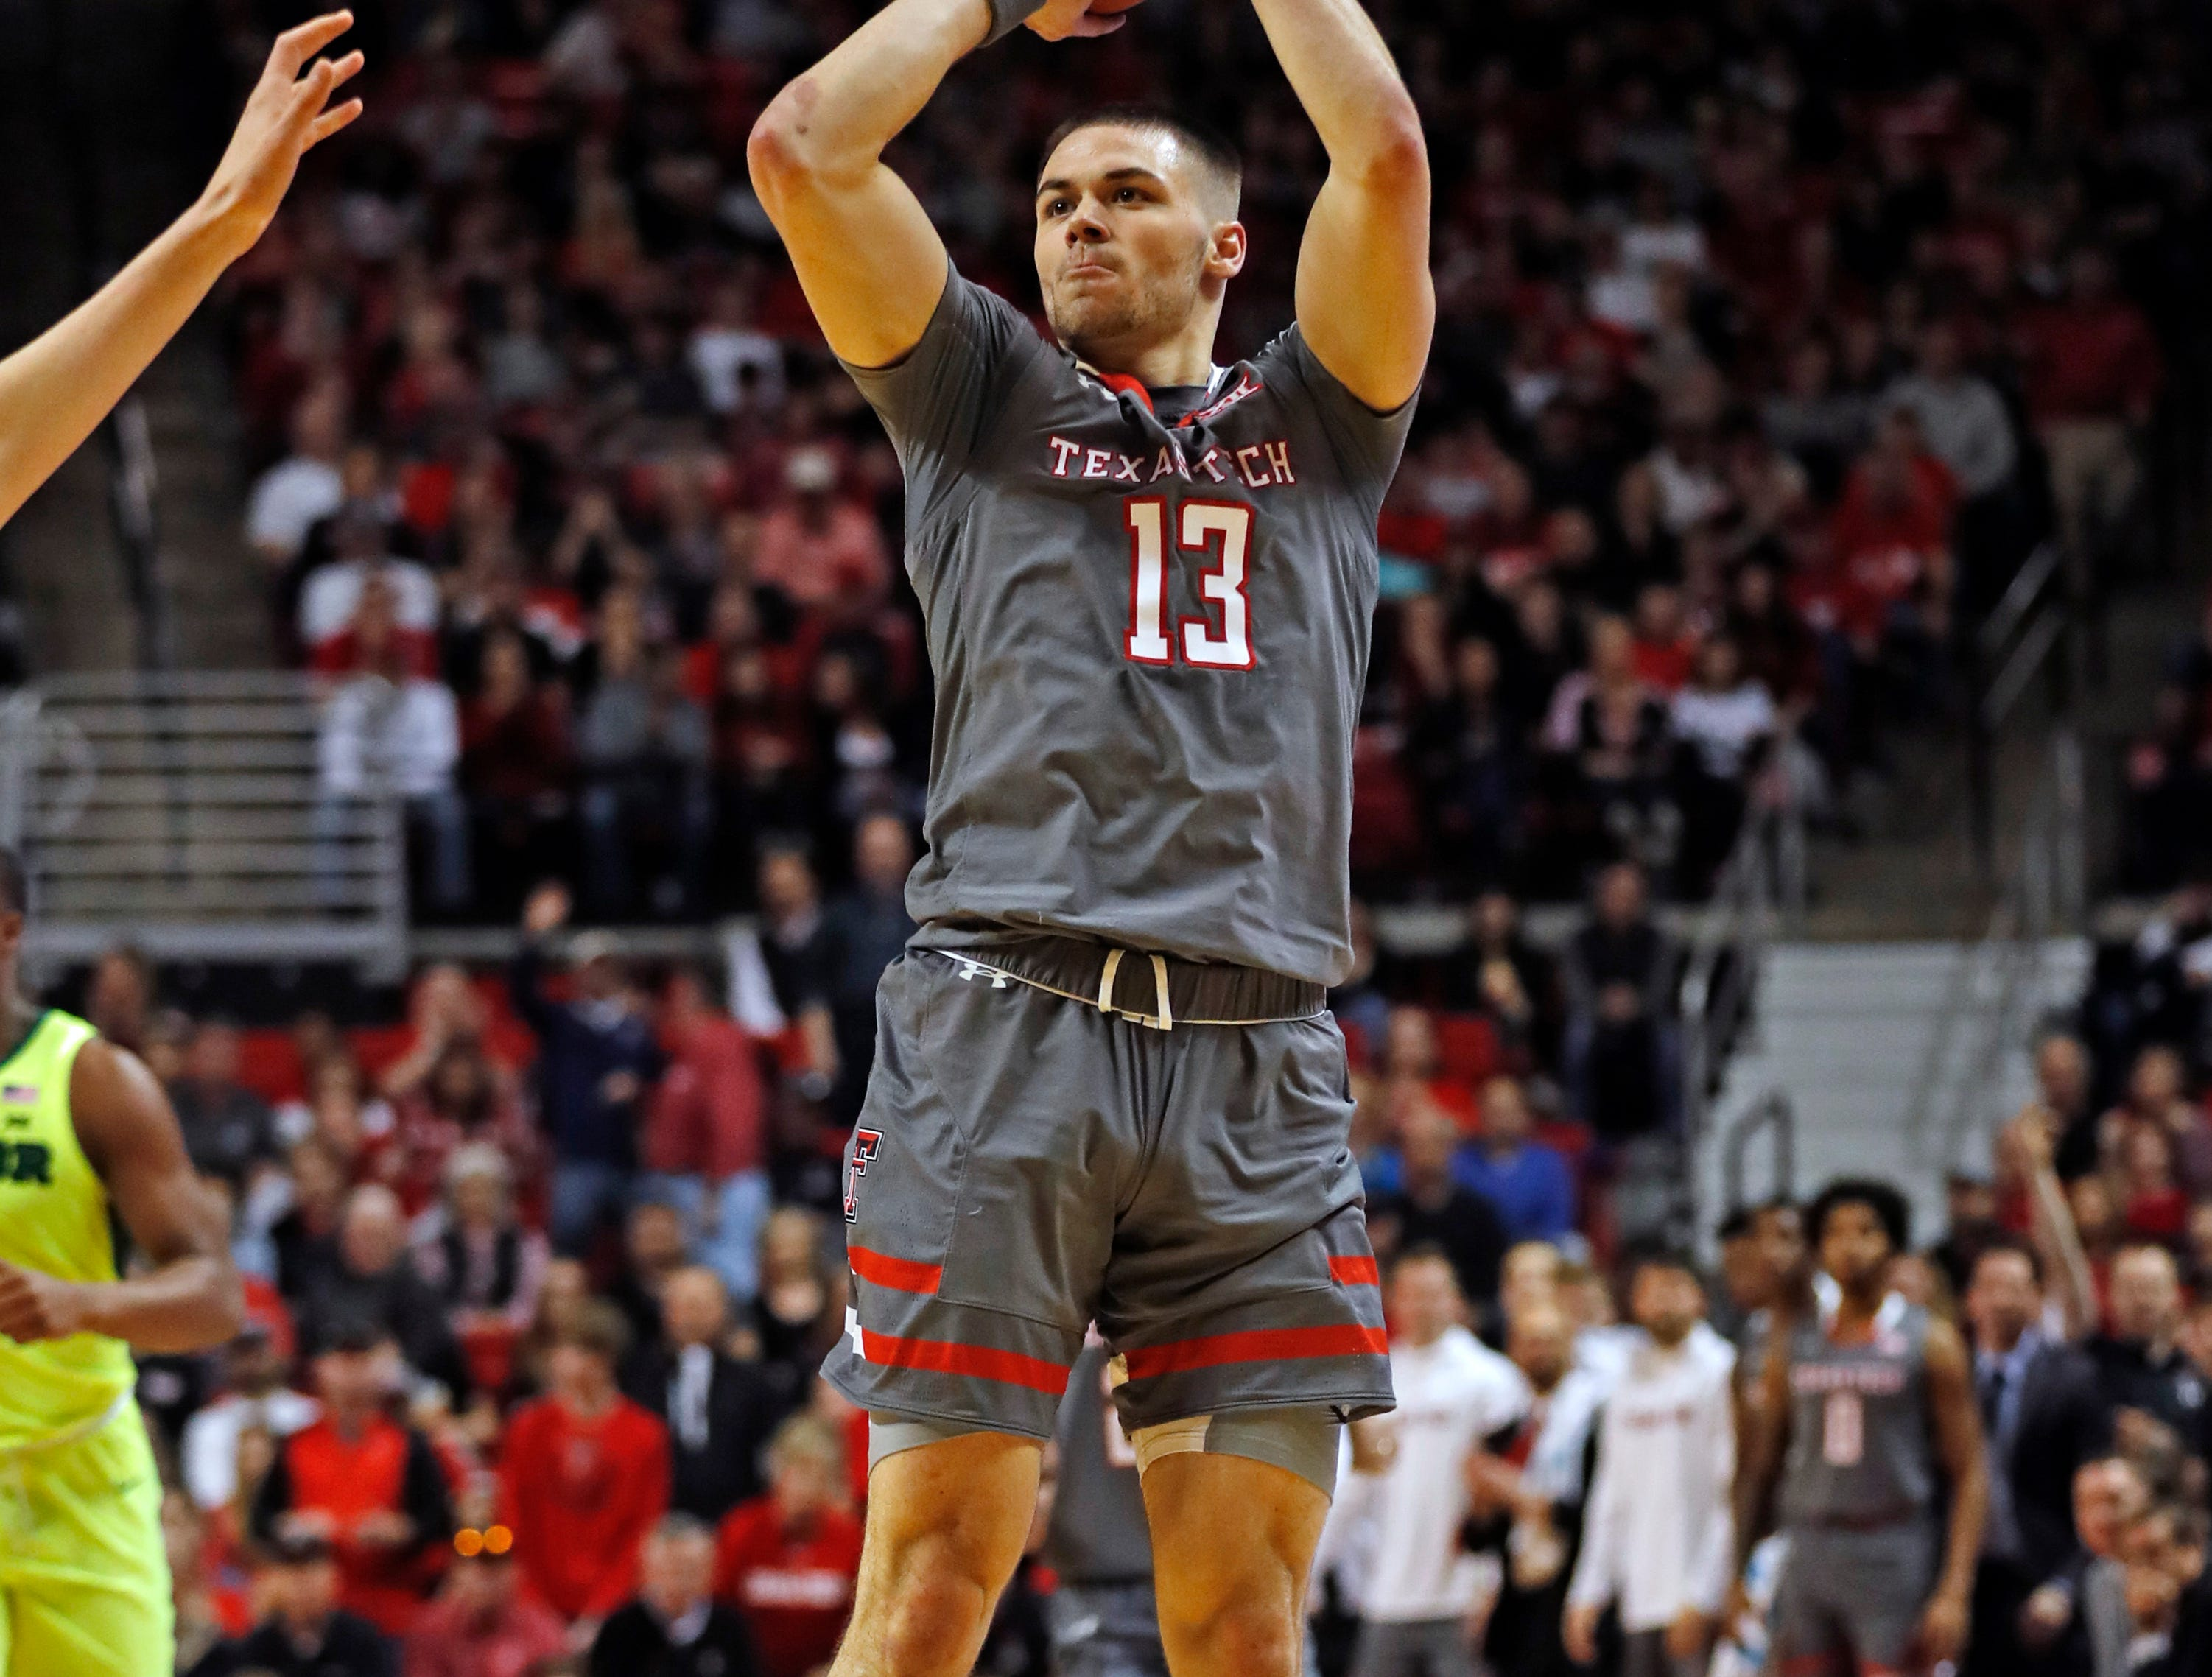 Texas Tech's Matt Mooney (13) shoots the ball for three points during the first half of an NCAA college basketball game against Baylor, Saturday, Feb. 16, 2019, in Lubbock, Texas. (AP Photo/Brad Tollefson)